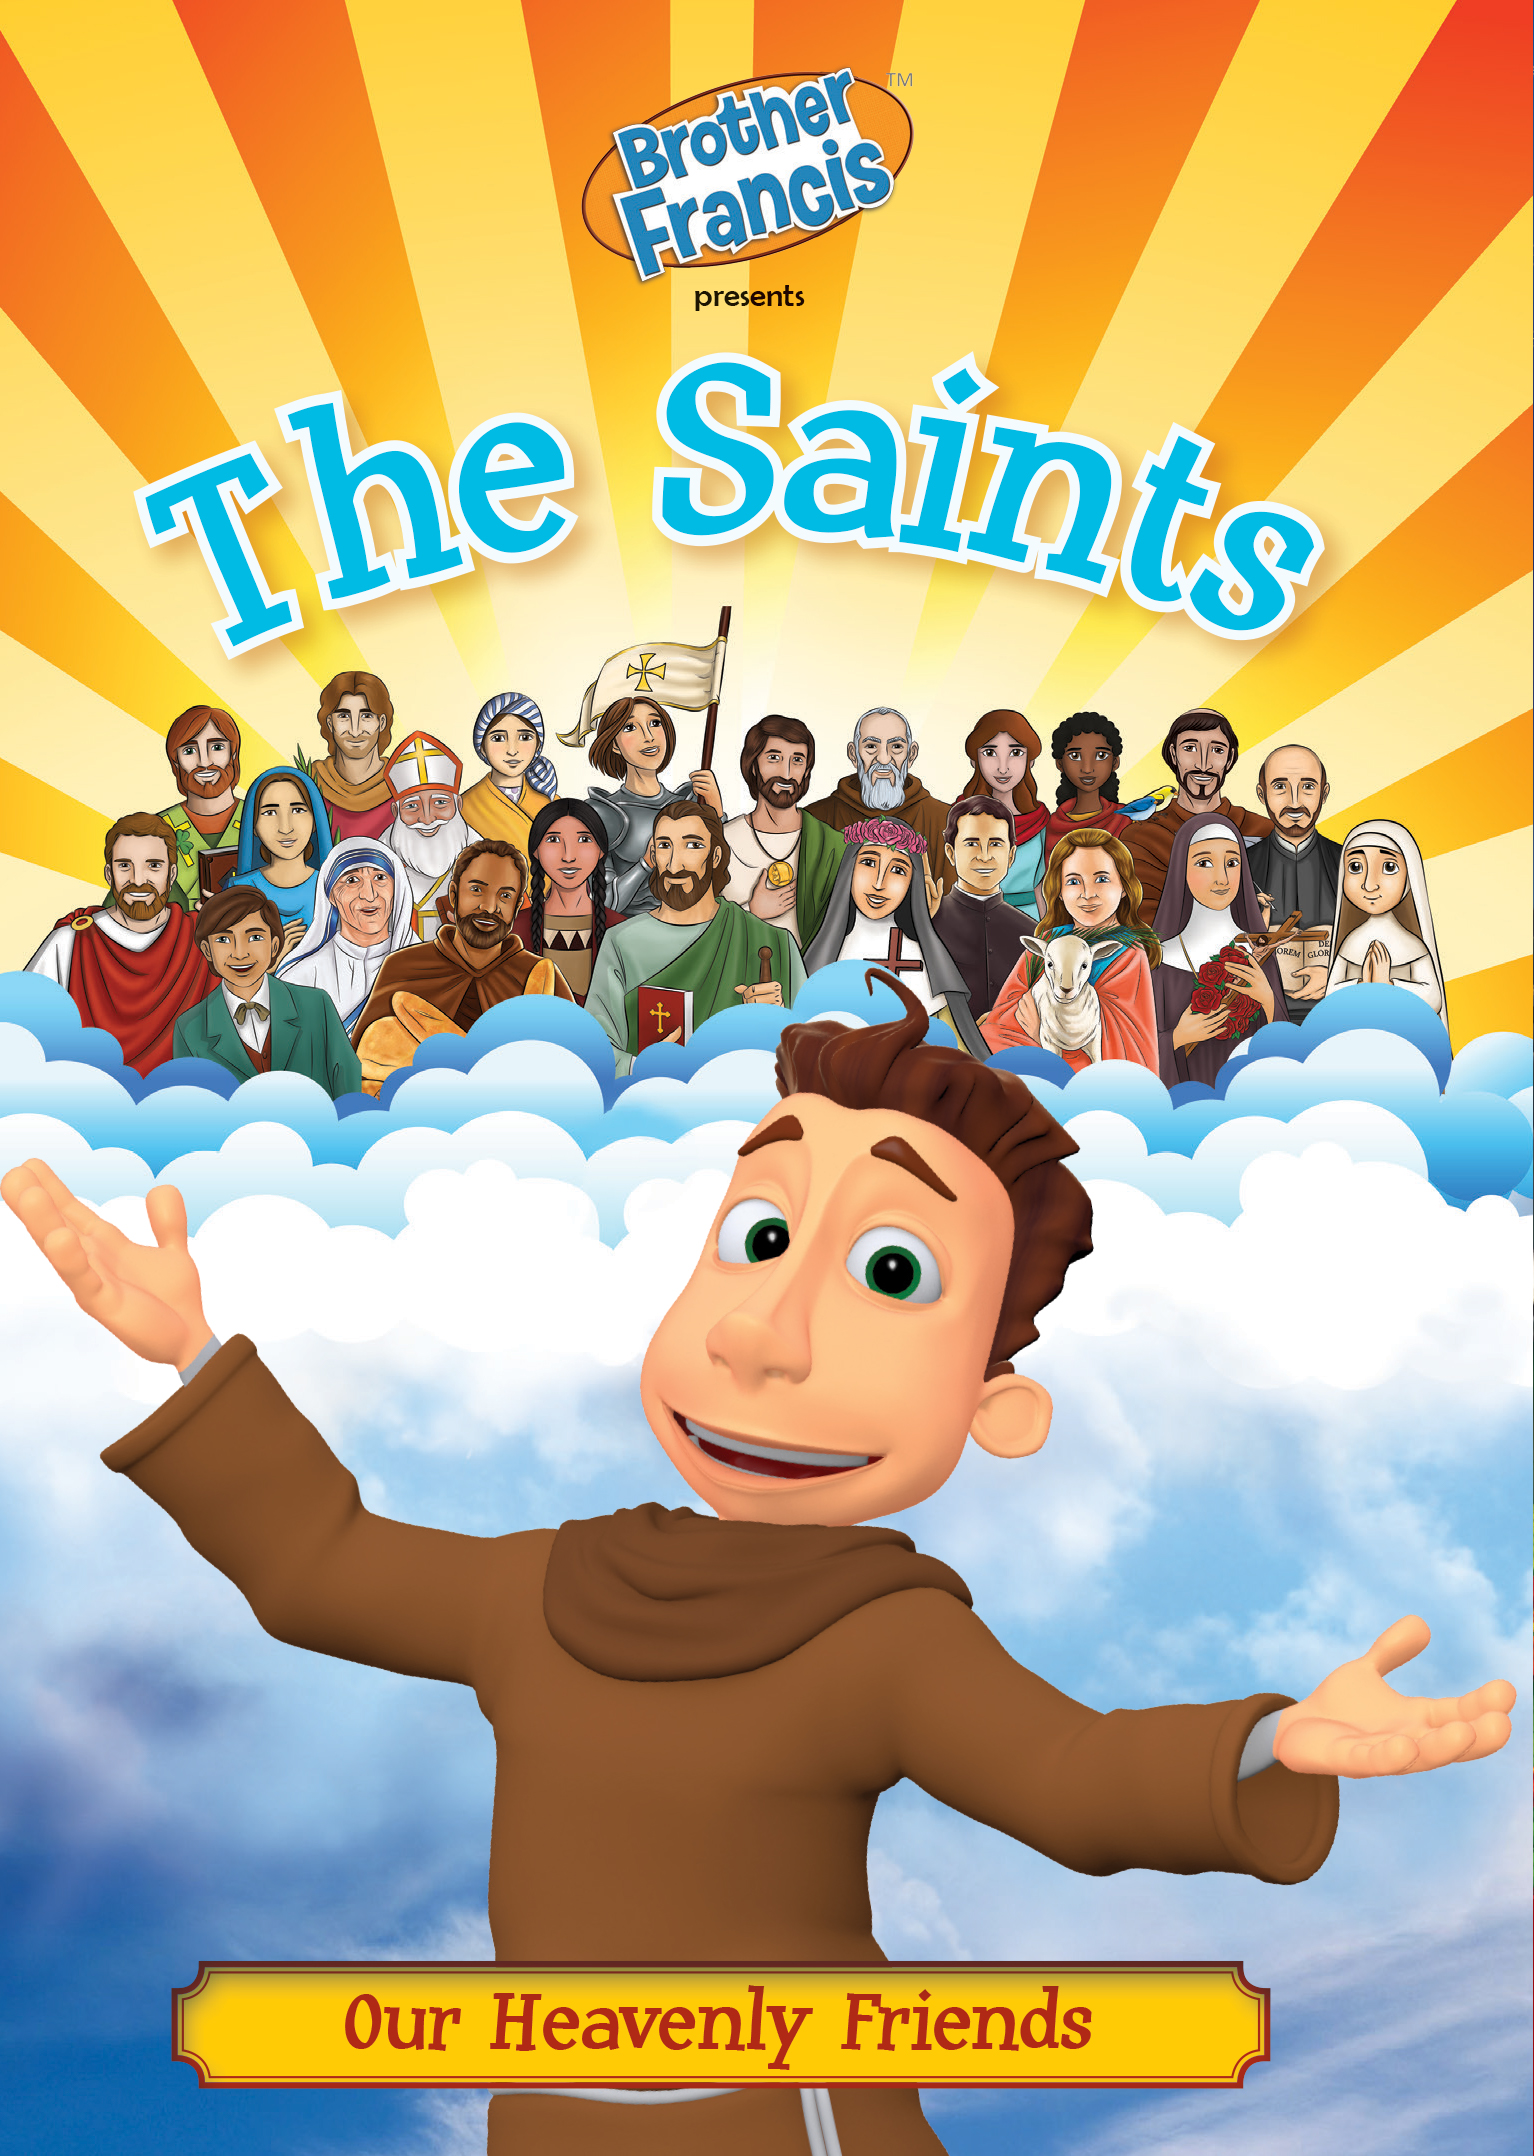 Brother Francis Episode 8: The Saints